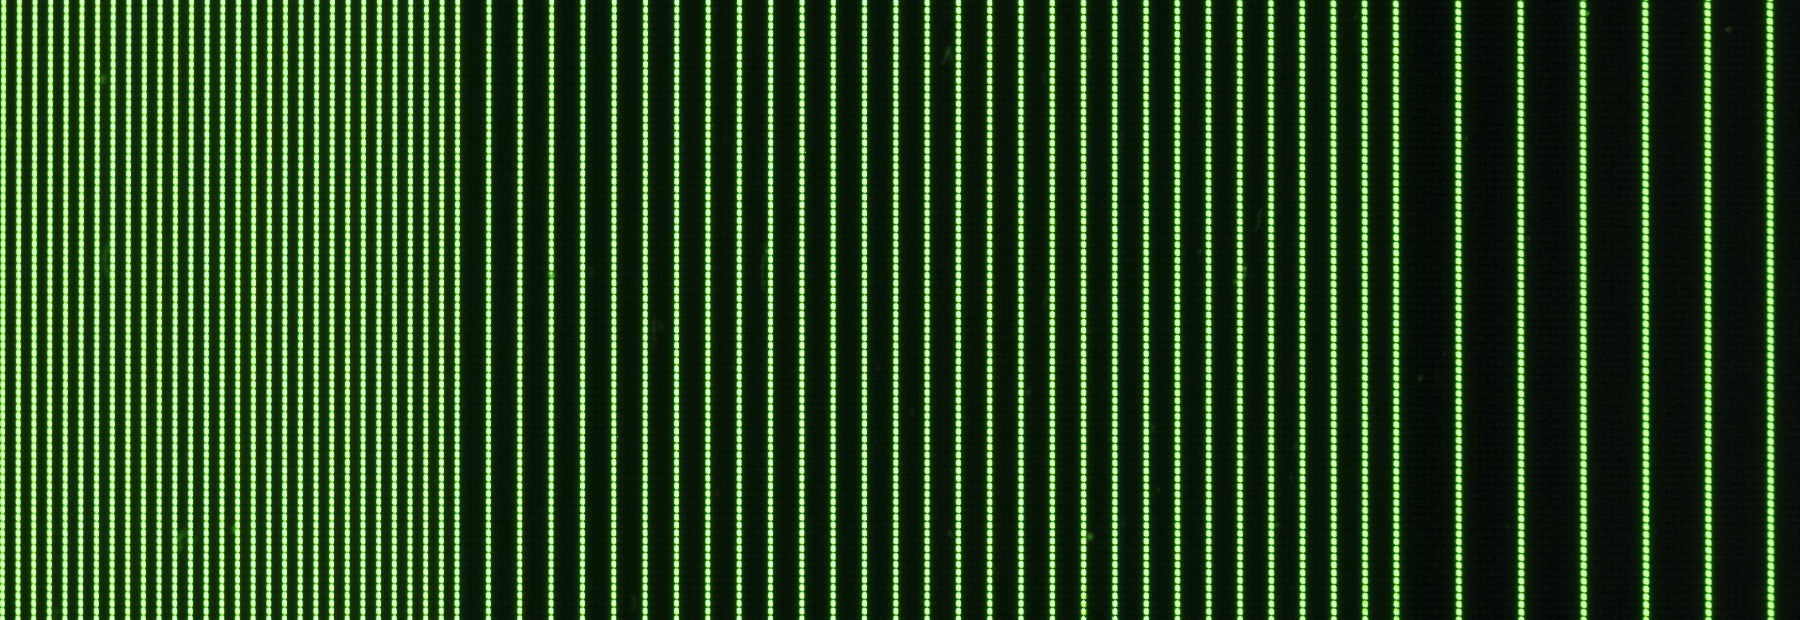 Detail photo of an iPhone 5 screen rendering the test pattern